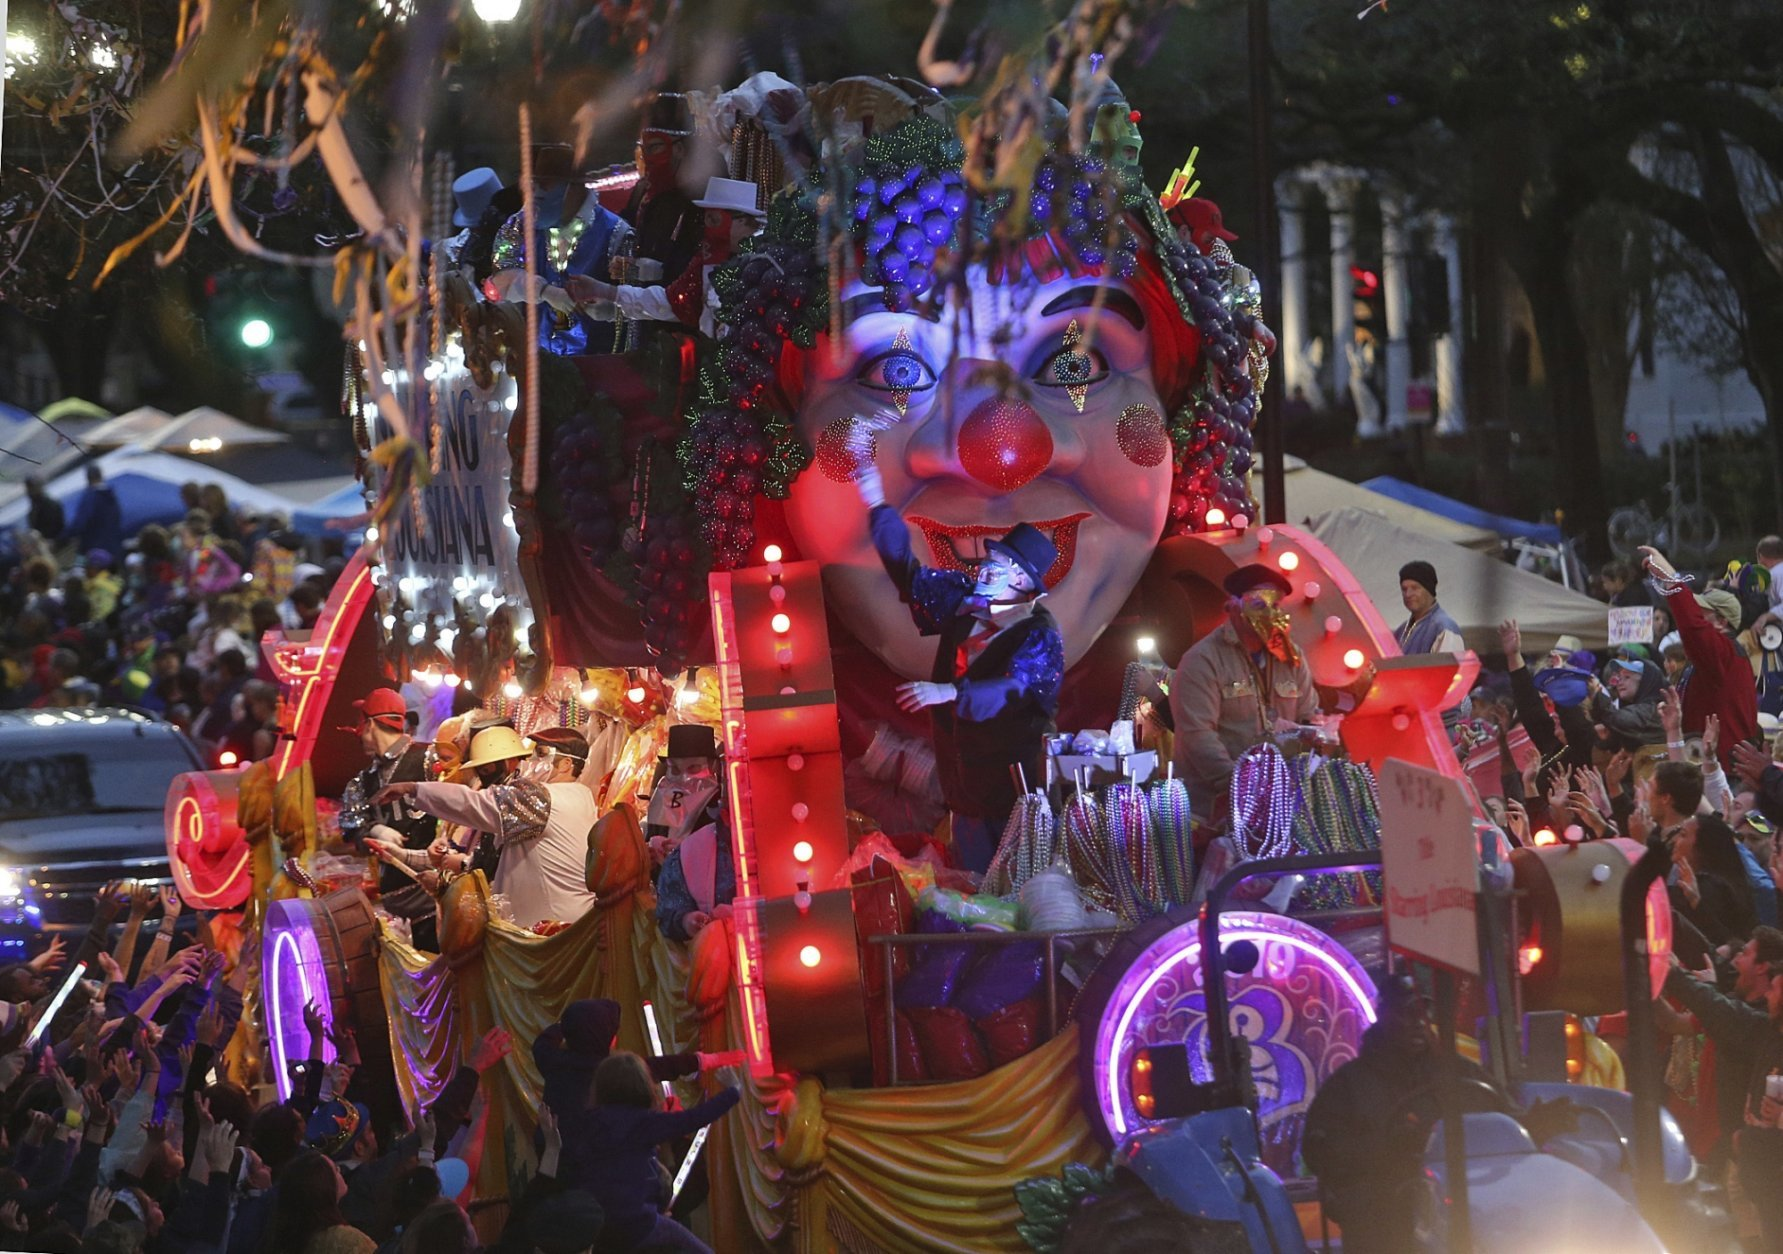 "The Title Float rolls down Napoleon Avenue as the 1,600 men of Bacchus present their 32-float Mardi Gras parade entitled ""Starring Louisiana"" on the Uptown route in New Orleans on Sunday, March 3, 2019. (Michael DeMocker/The Times-Picayune via AP)"